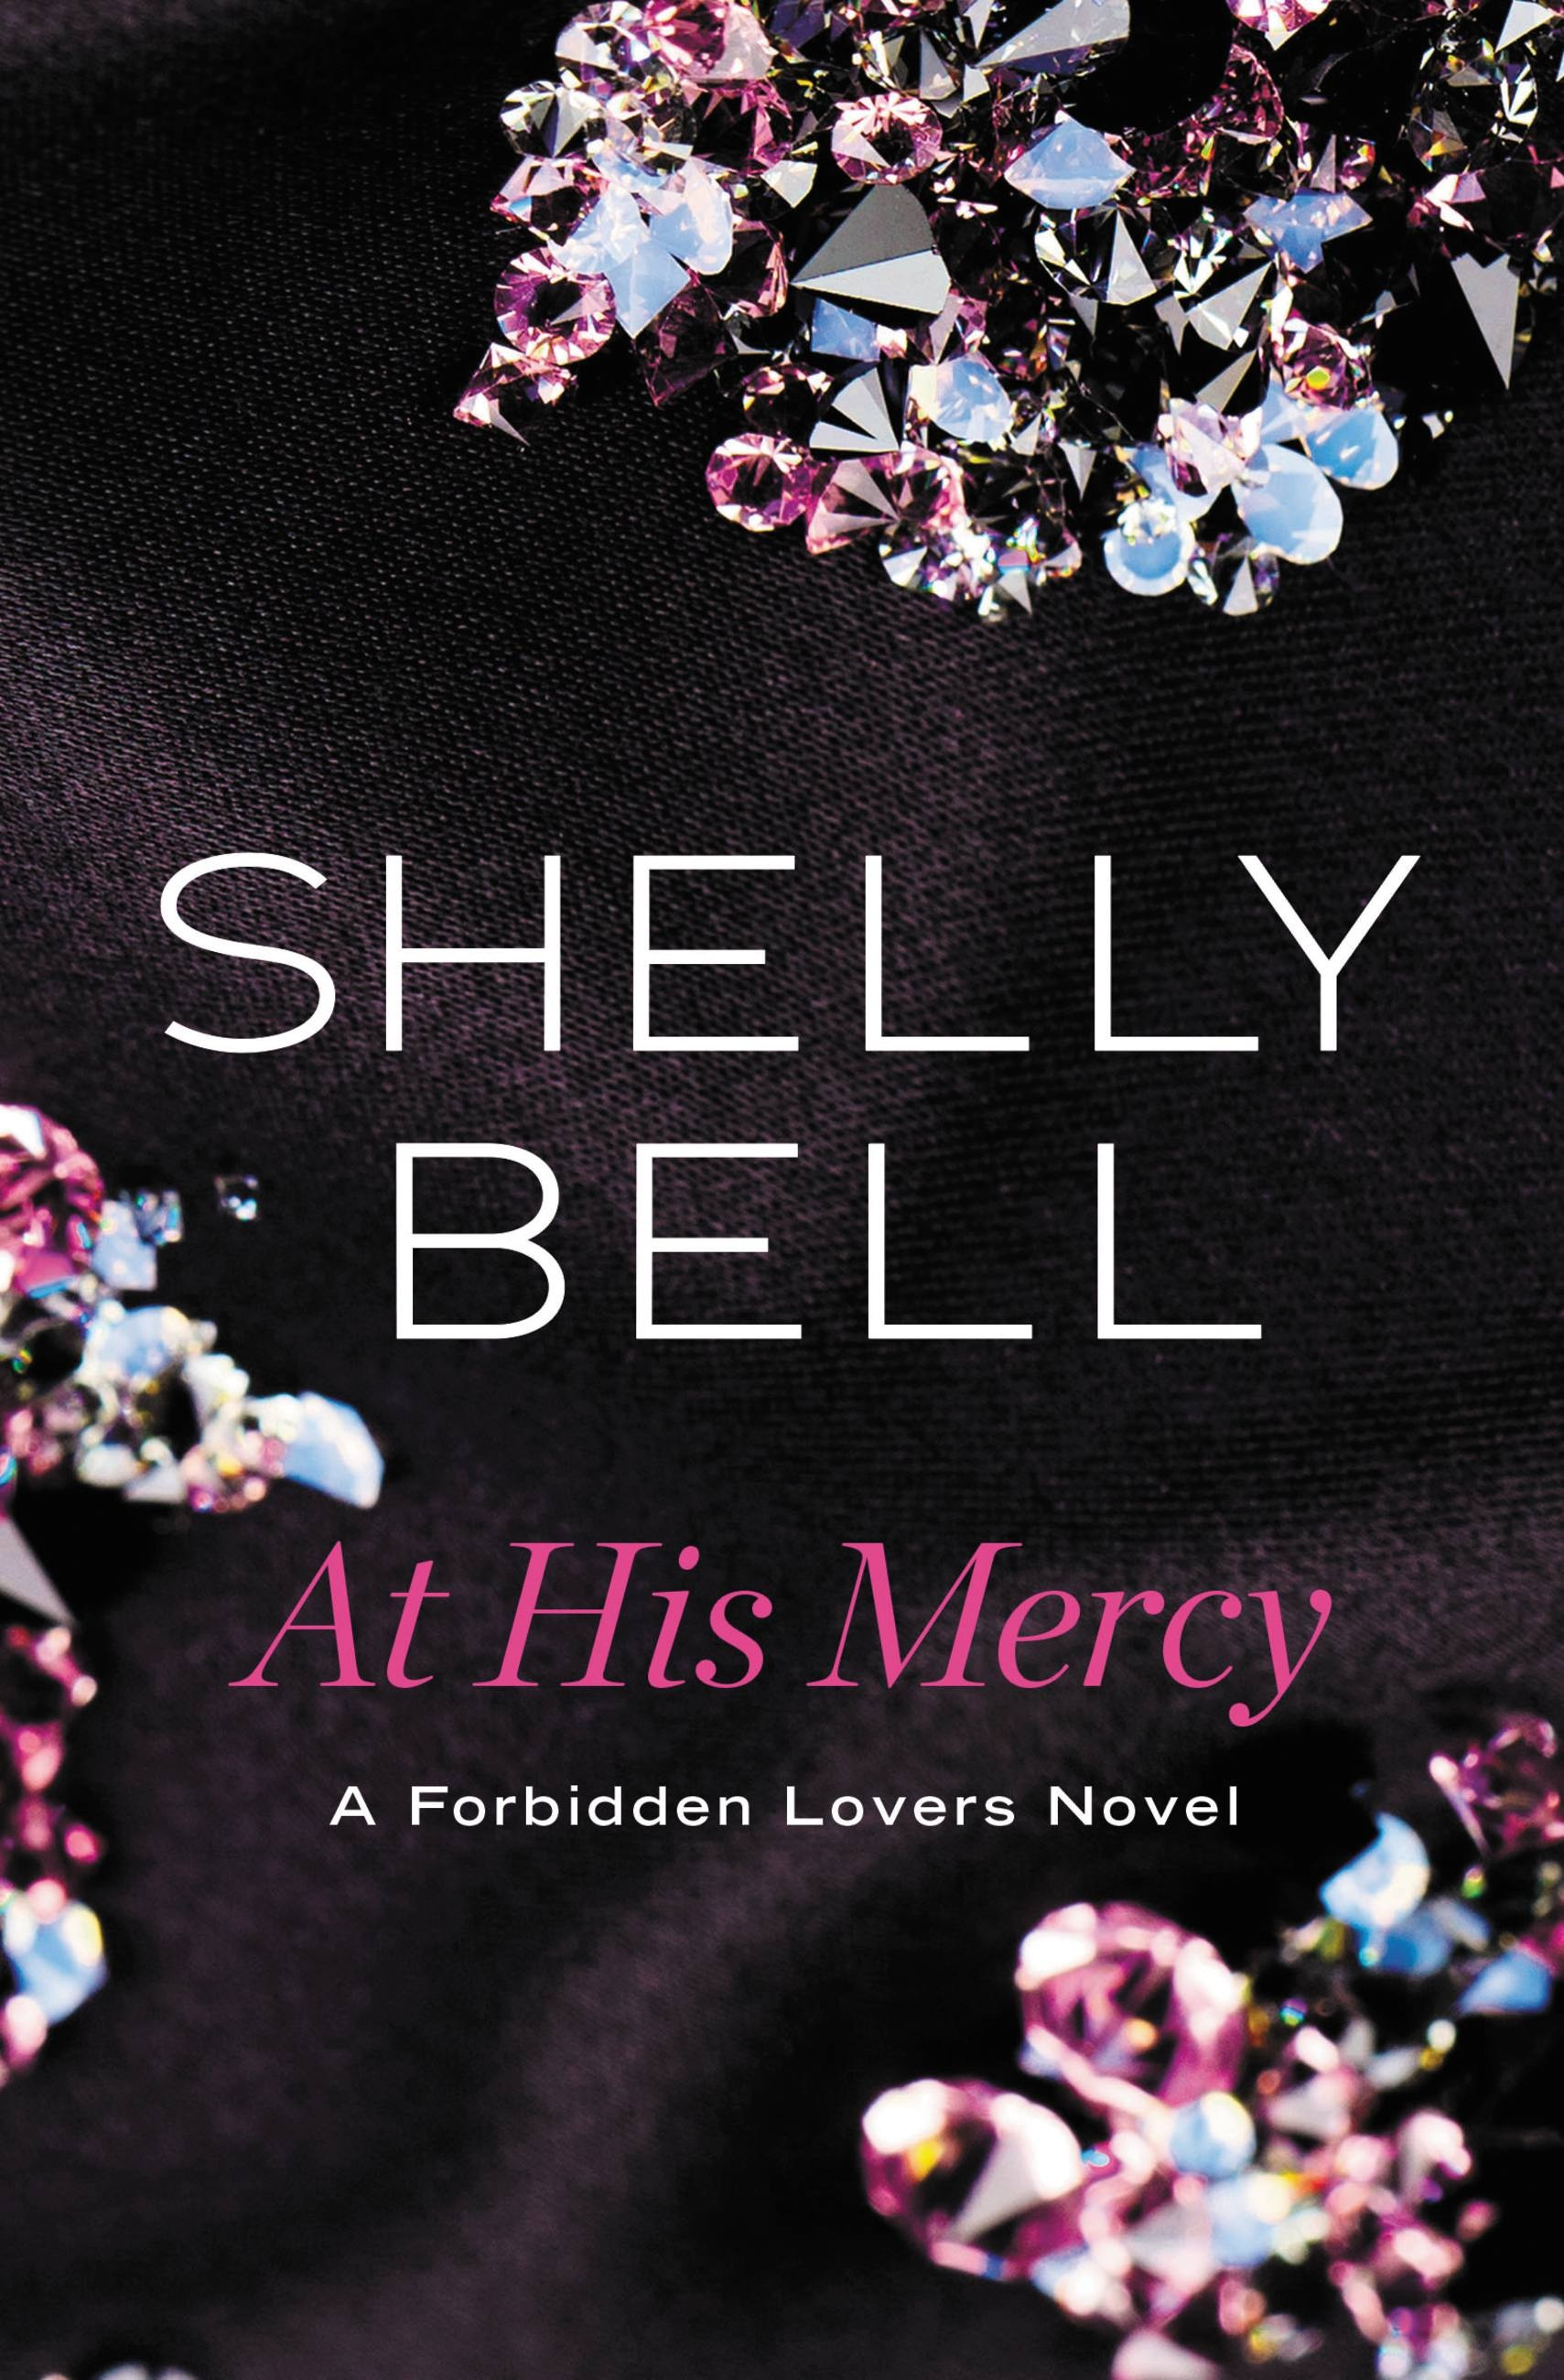 At His Mercy by Shelly Bell | Hachette Book Group